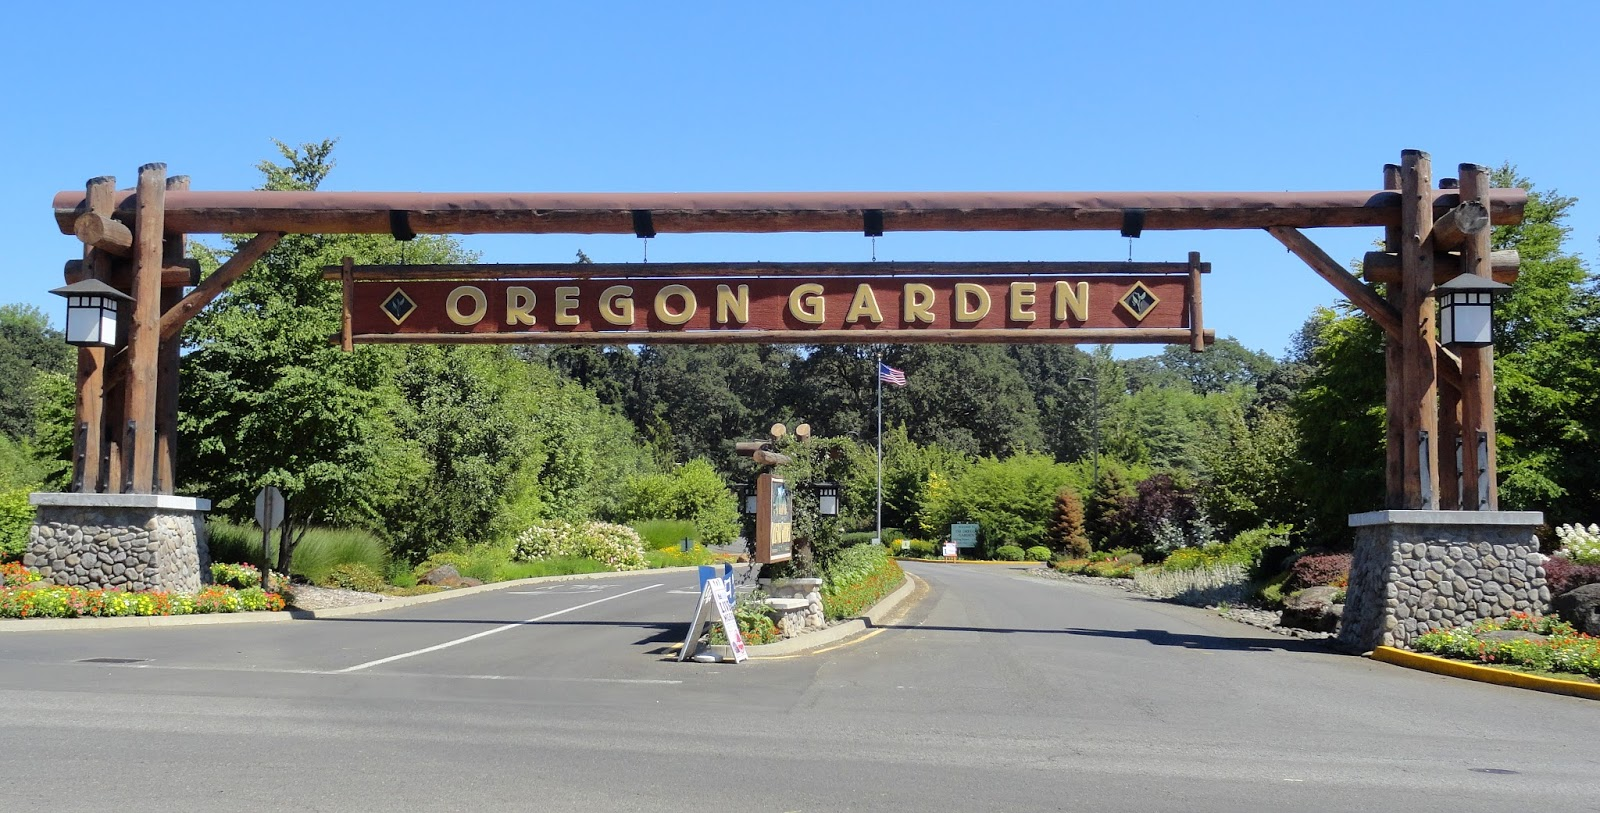 the oregon garden my adopted home state kicks fanny as far as the horticultural industry is concerned i believe were 3rd in the nation - The Oregon Garden